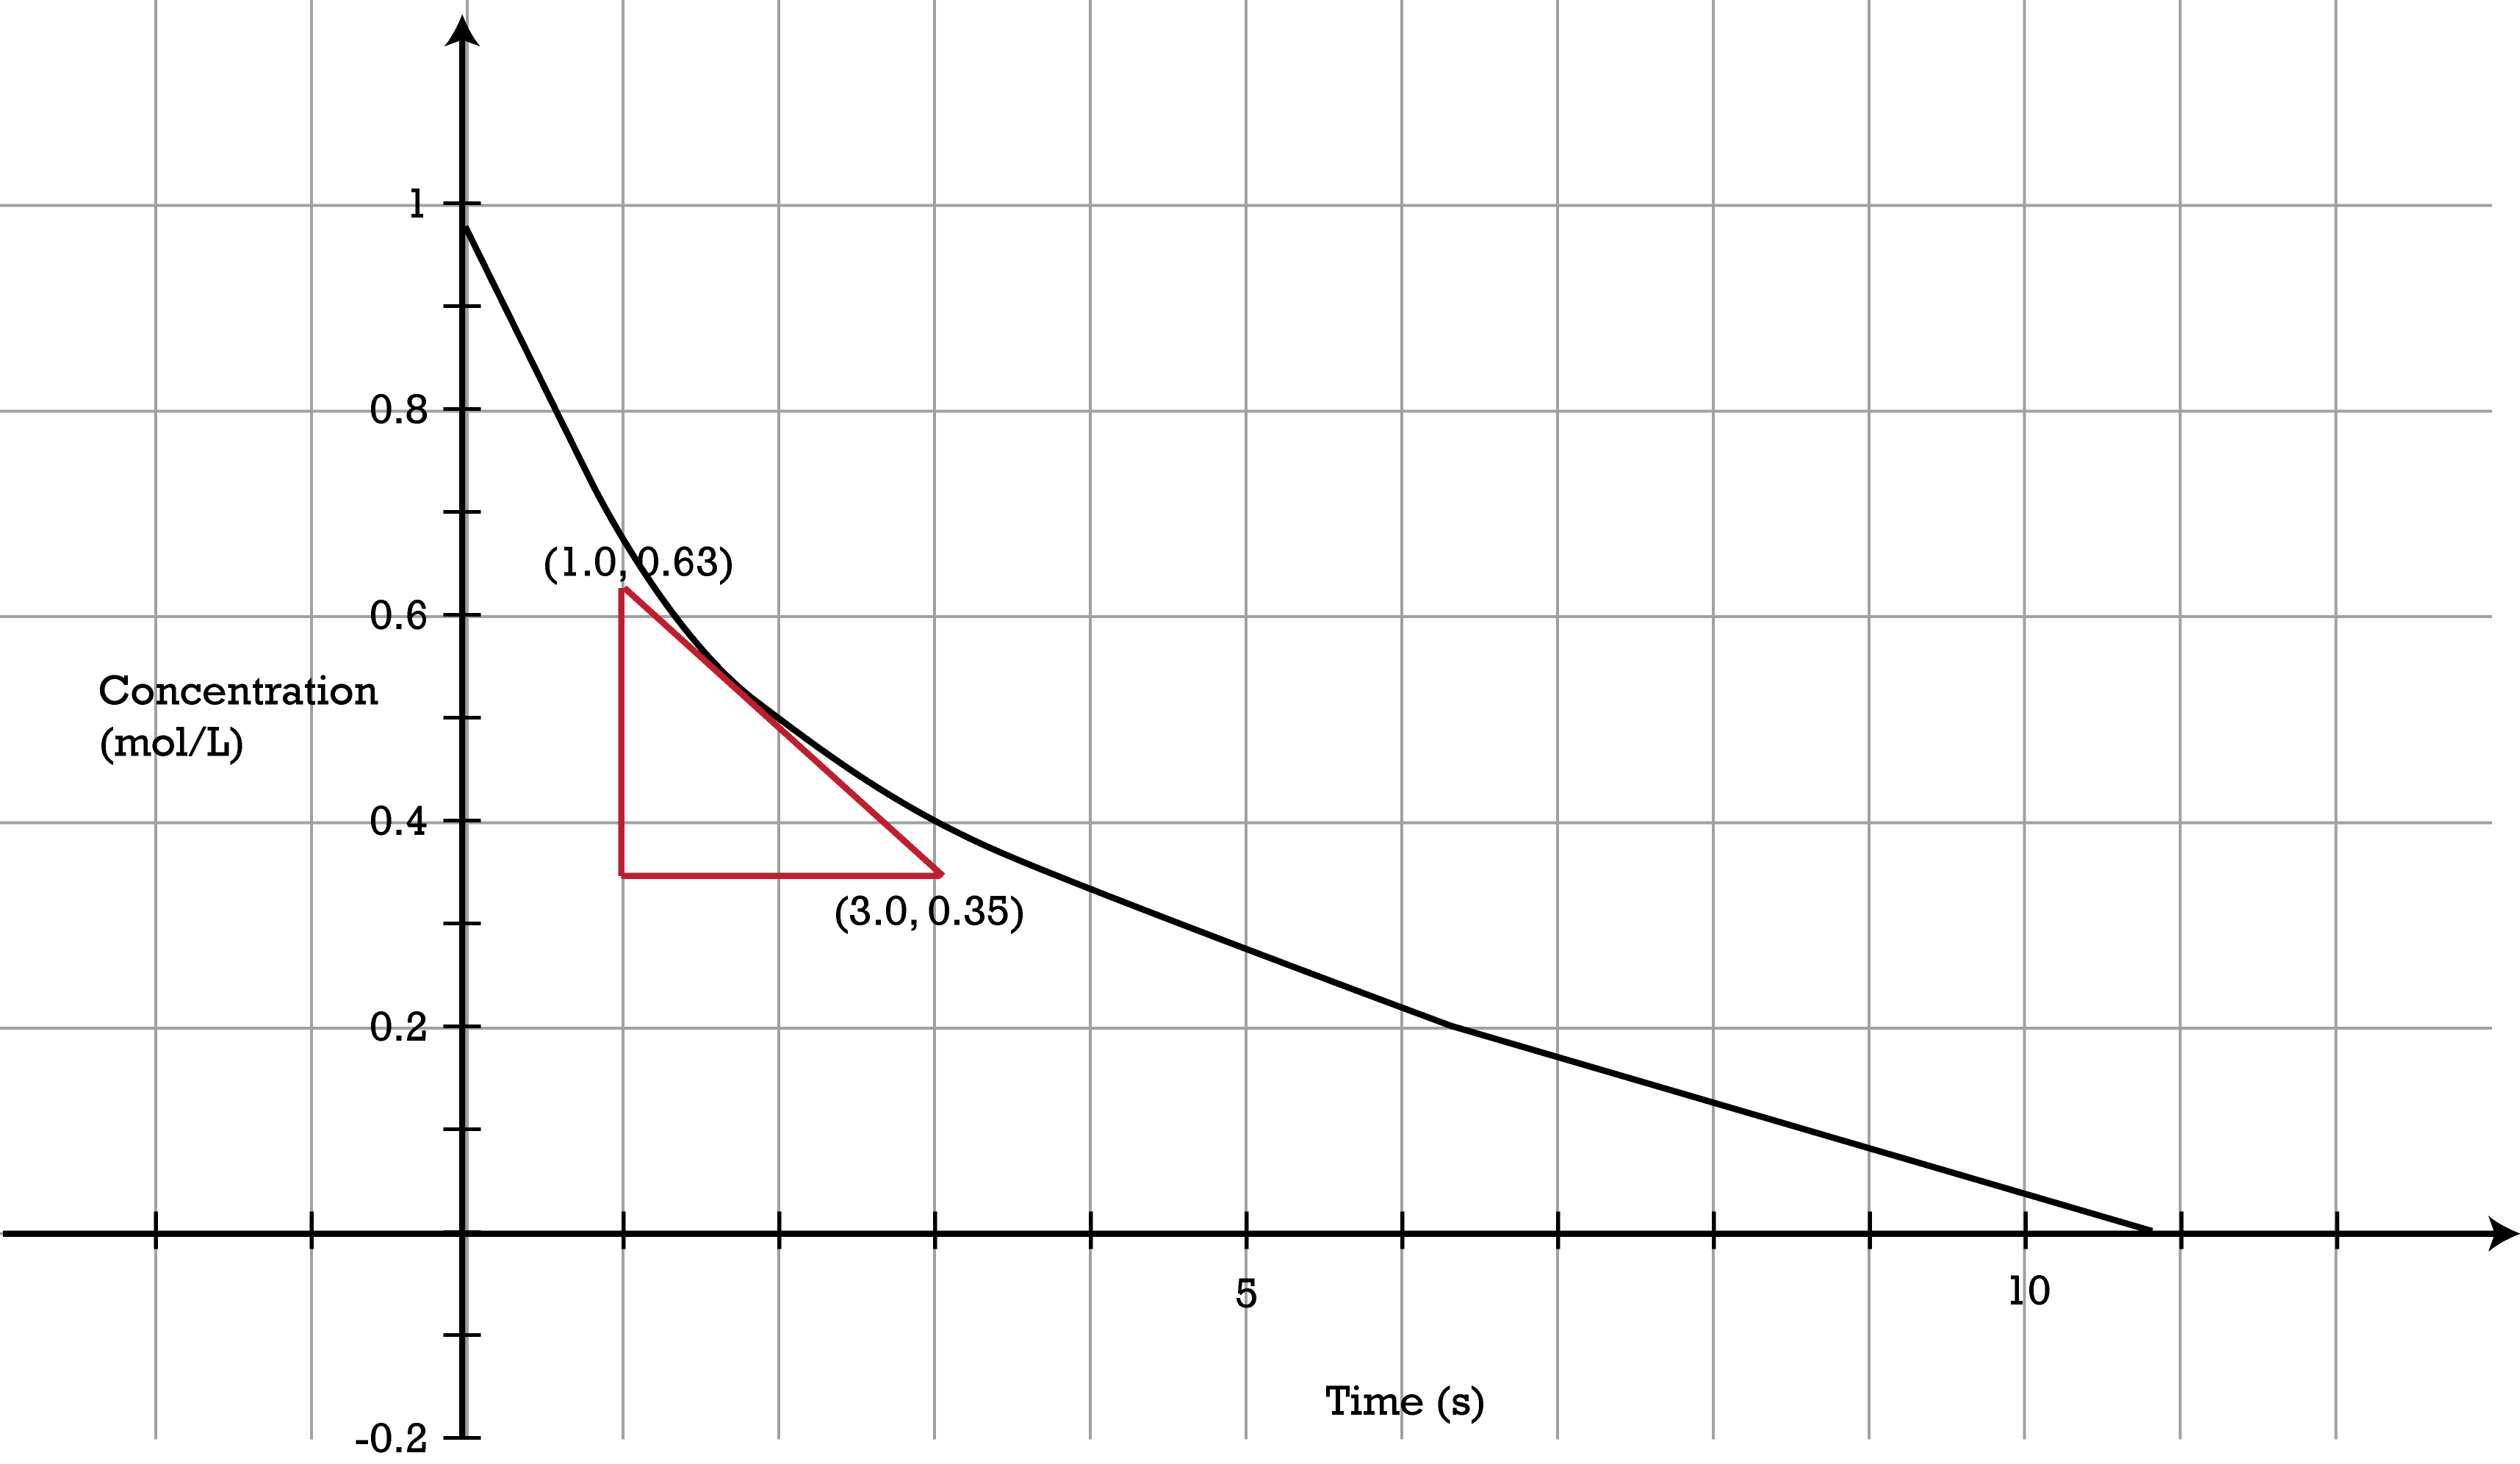 The instantaneous rate of a reaction can be measured by the slope of the tangent line at that point